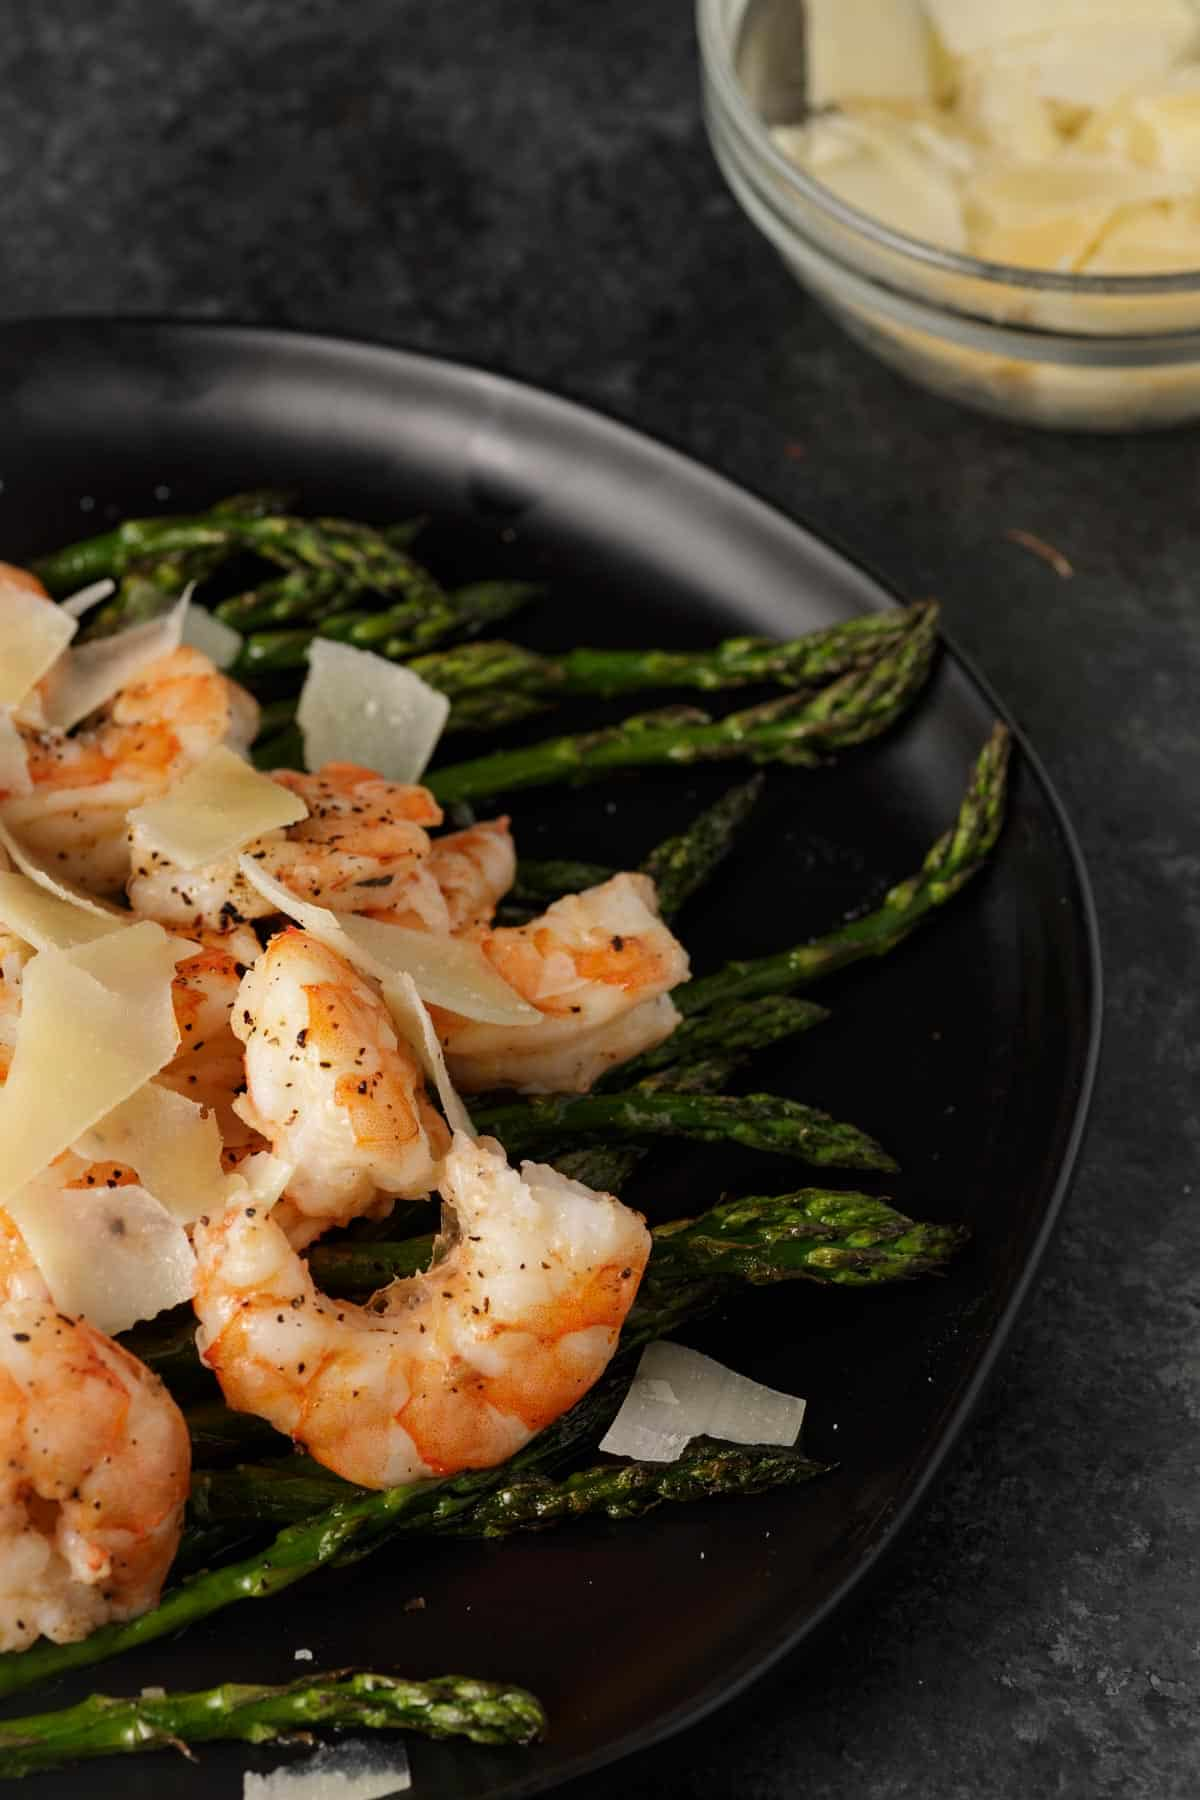 A platter of oven roasted shrimp on asparagus with a bowl of cheese